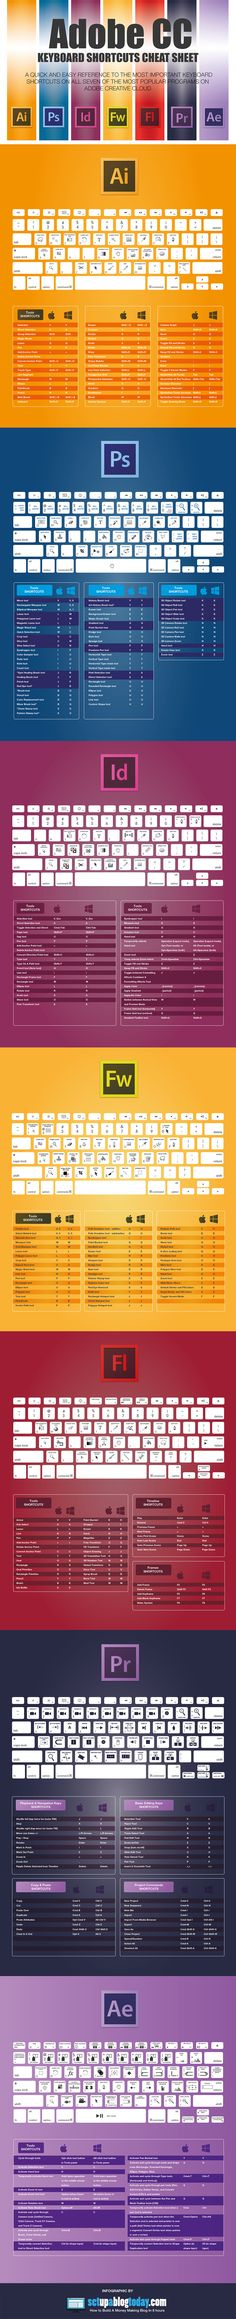 The Ultimate Adobe Creative Cloud Cheat Sheet for DIY Designers